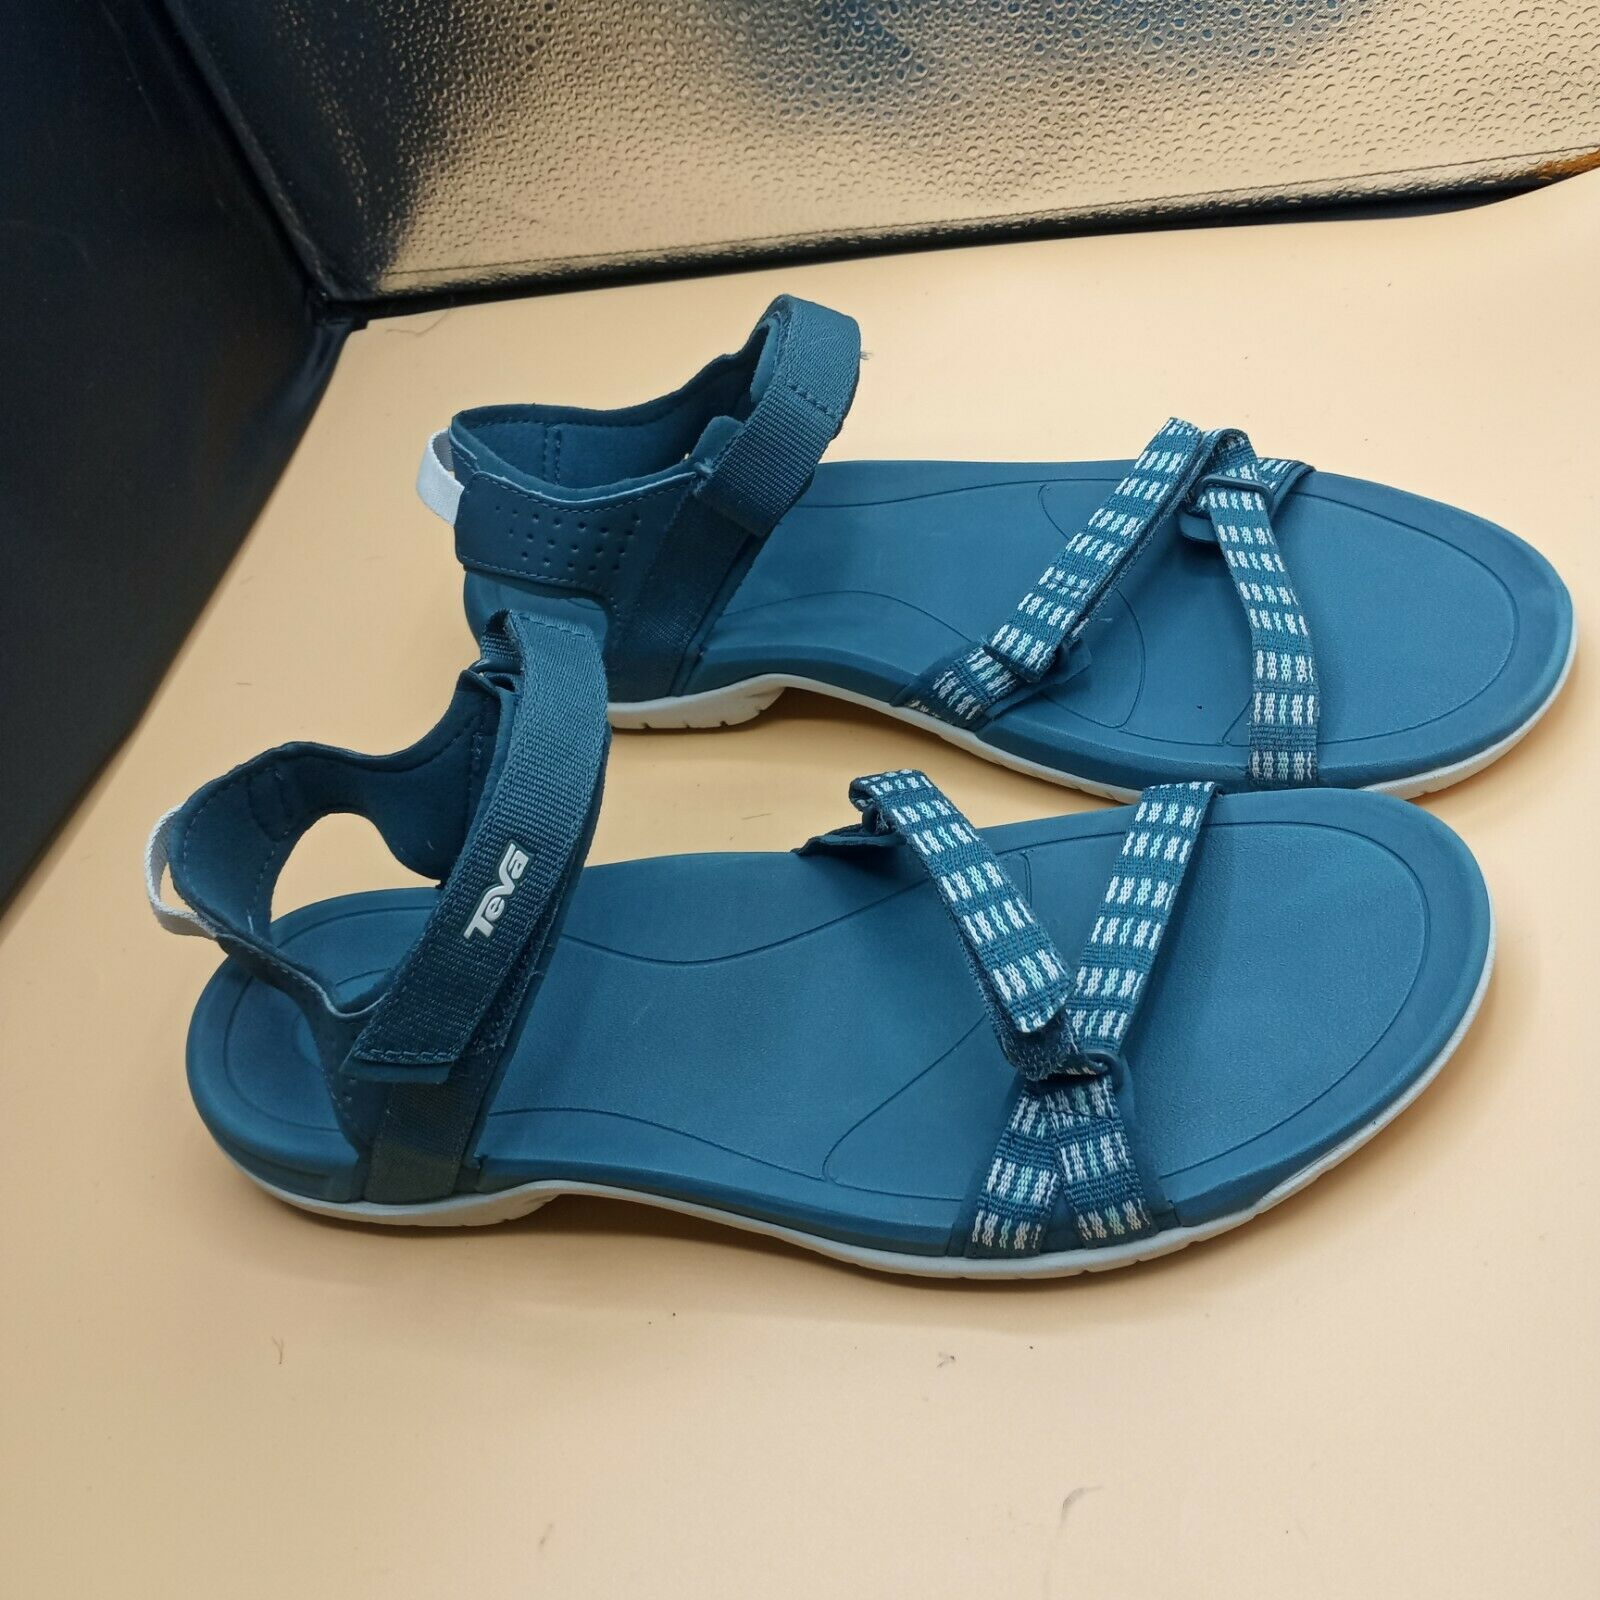 Teva Women Sandals 11 - image 8